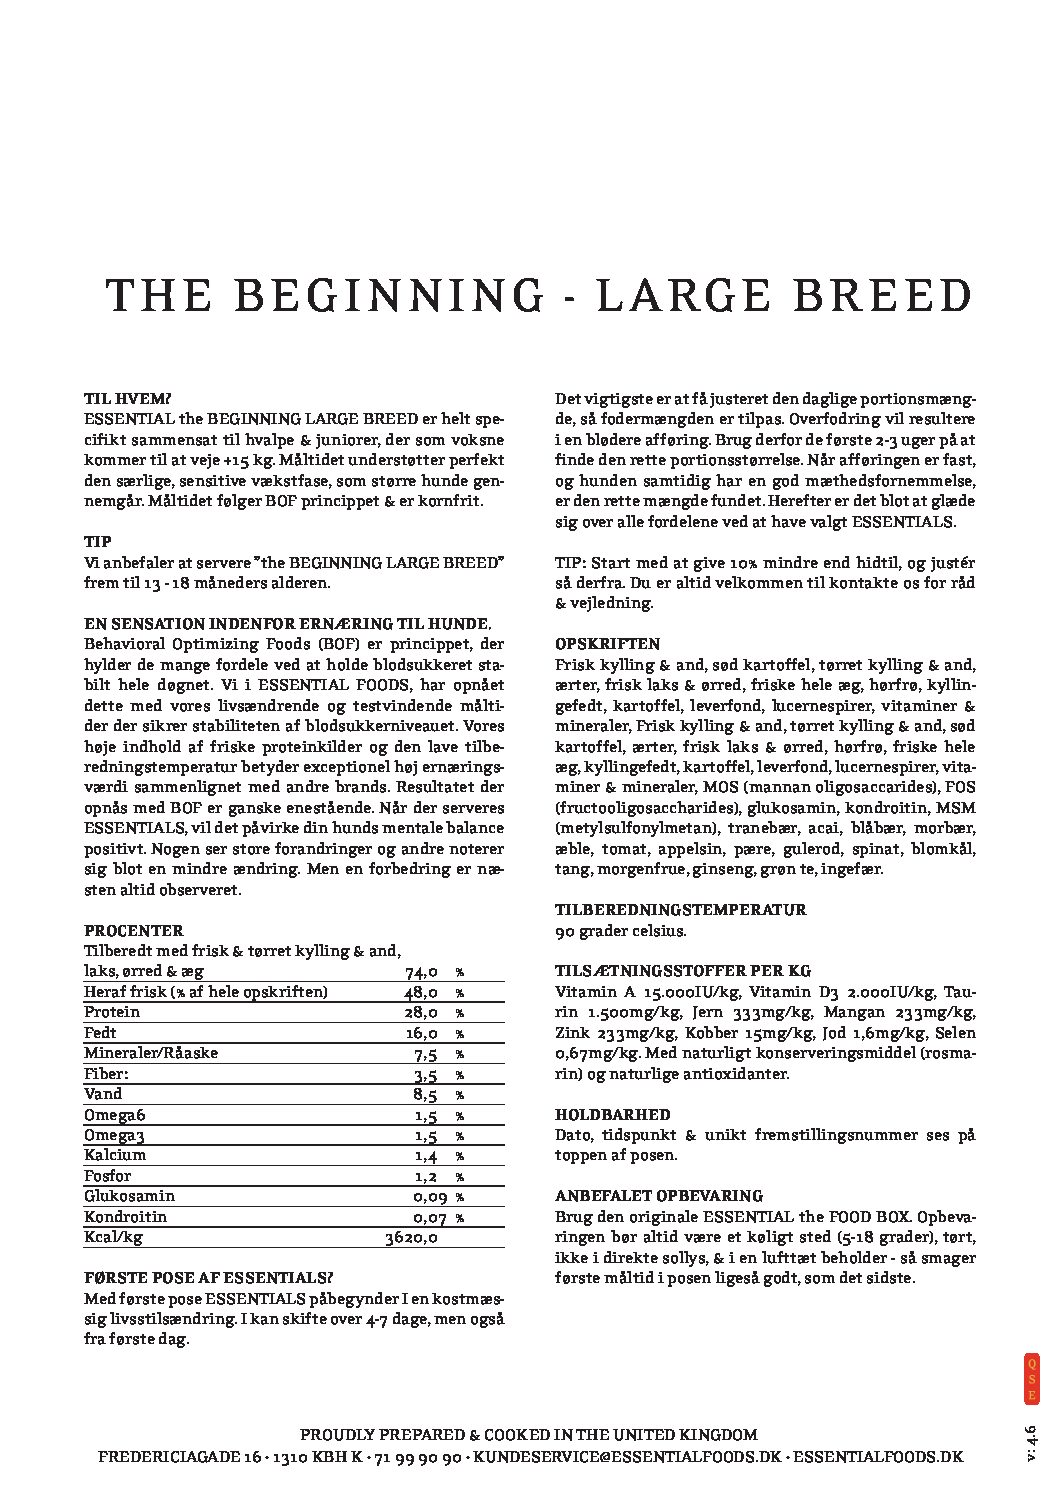 12,5KG ESSENTIAL THE BEGINNING LARGE BREED 1